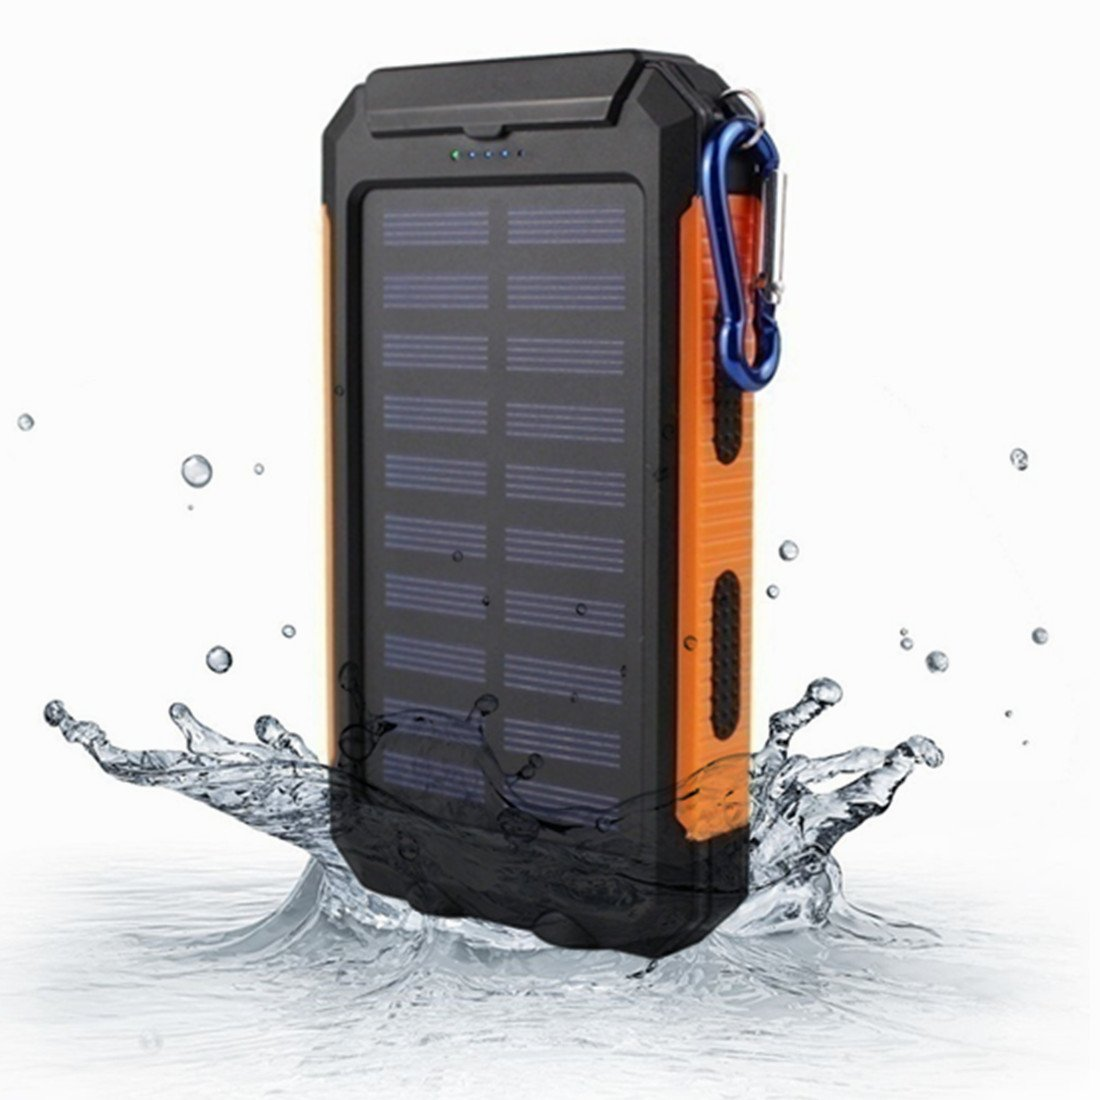 KRECOO Portable Power Banks 20000mAh External Solar Power Bank Dual USB with 2 Flashlight Waterproof Powerbank for iPhone, iPad & Samsung Galaxy & More Quanzhou Adamant Trade Co. Ltd. ad006